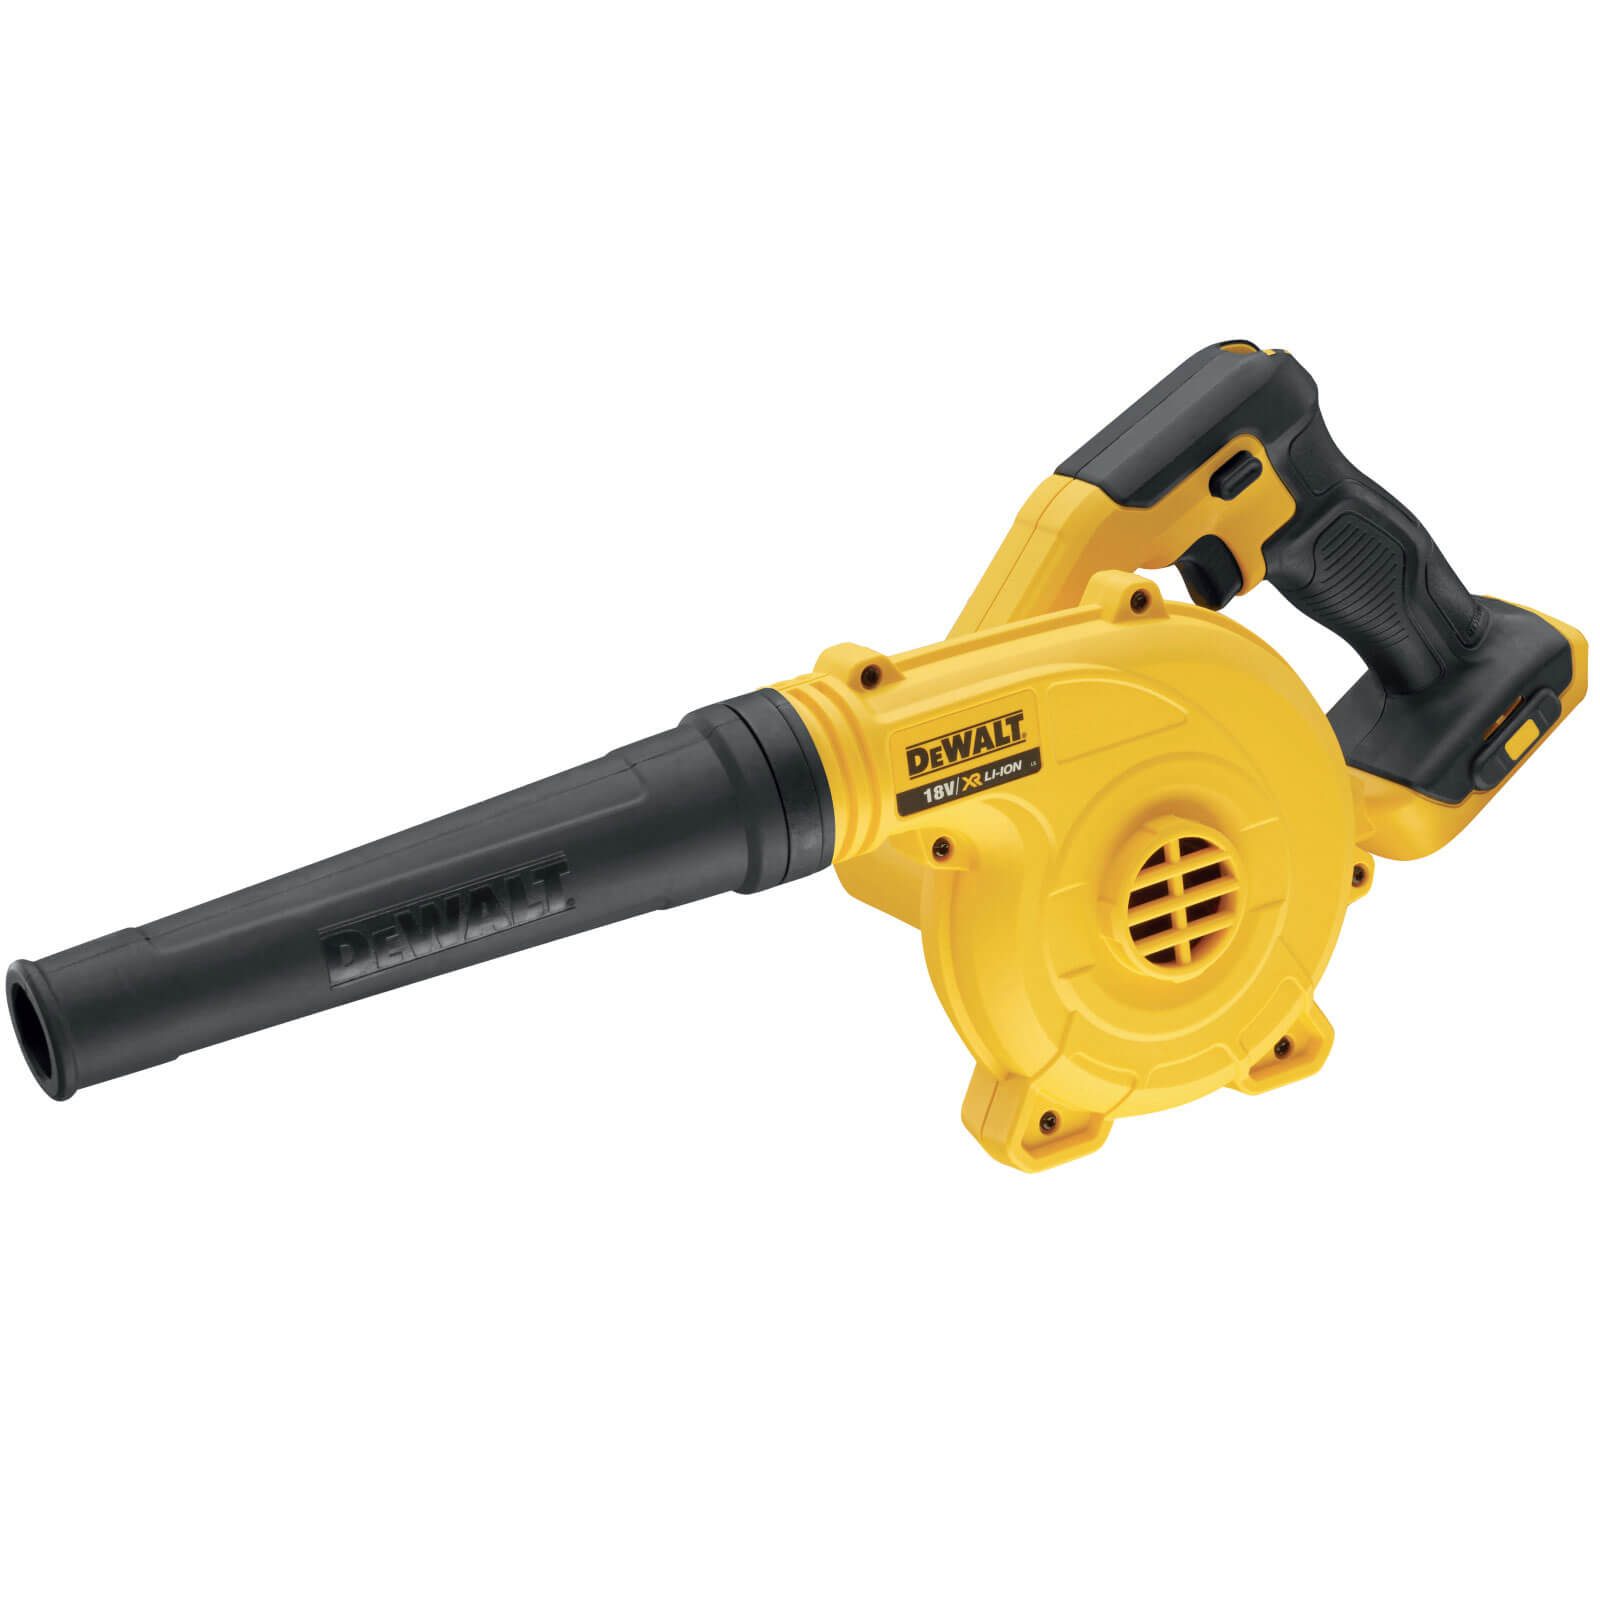 dewalt dcv100 18v xr cordless compact blower. Black Bedroom Furniture Sets. Home Design Ideas